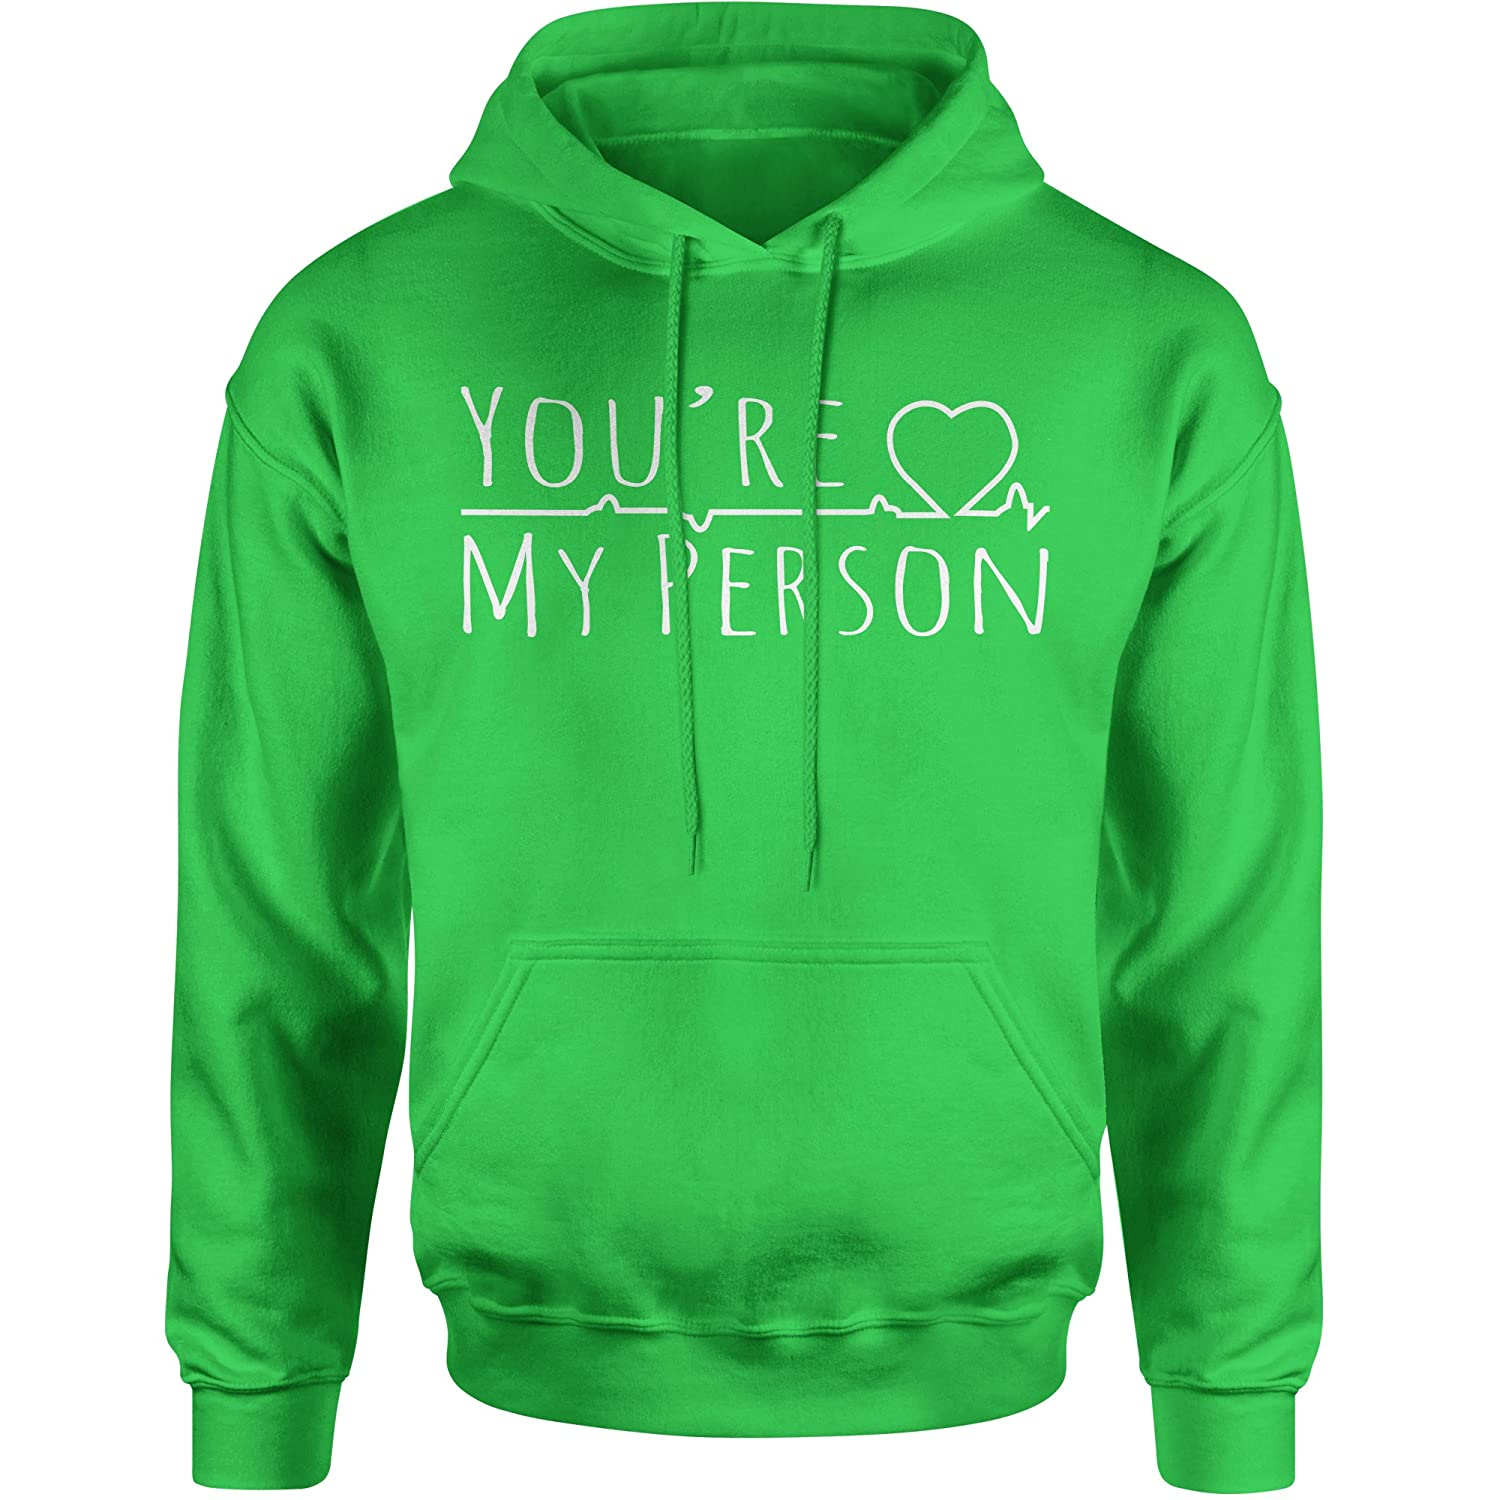 Expression Tees You're My Person Unisex Adult Hoodie 2192-H